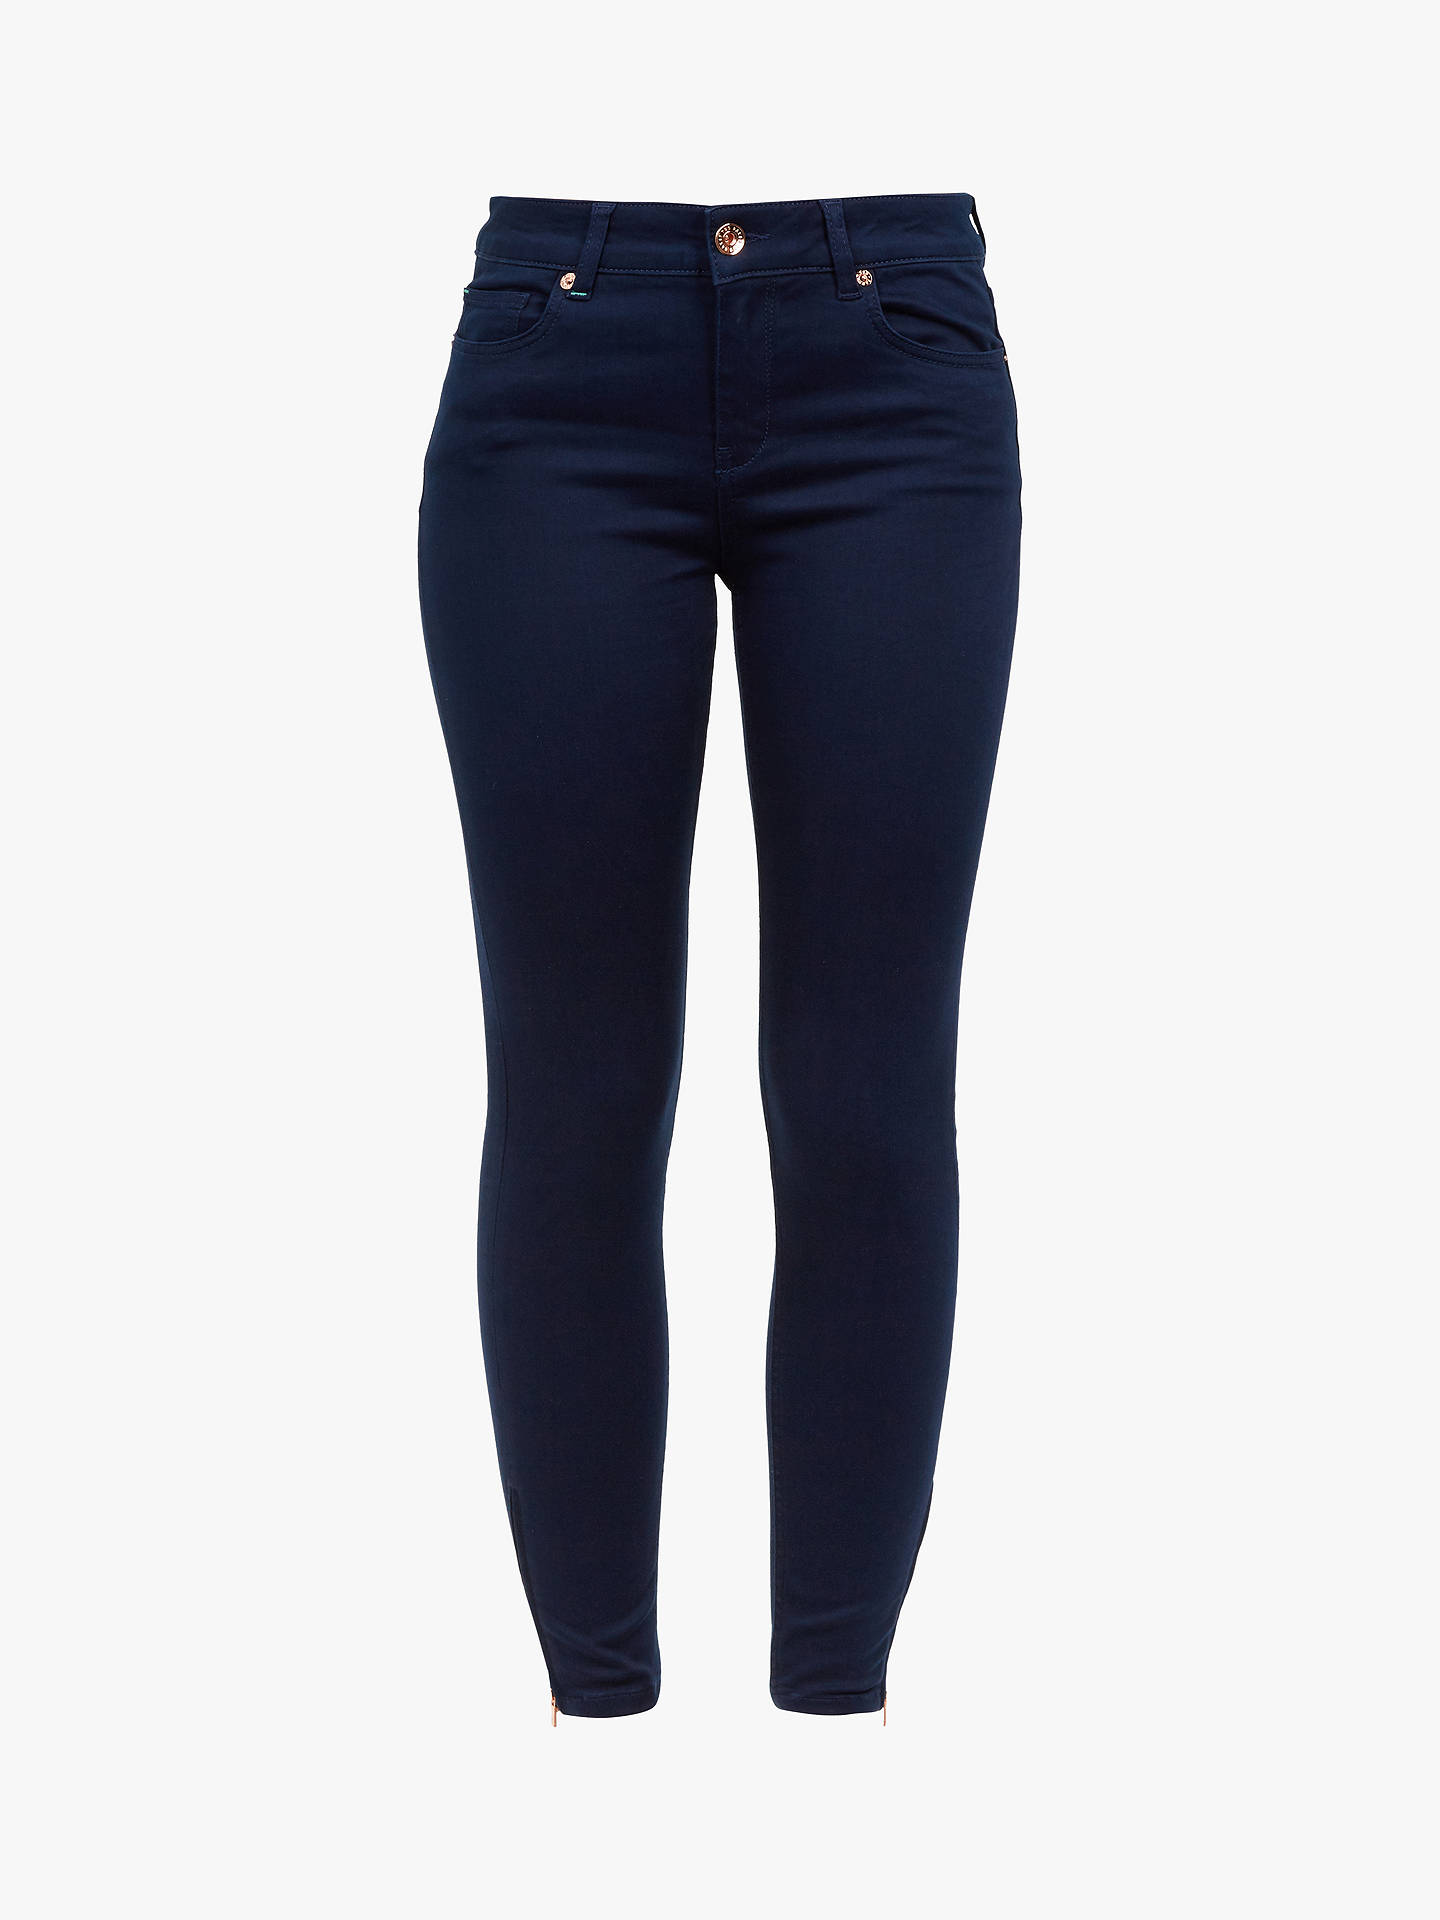 Buy Ted Baker Dariaas Skinny Rinse Wash Jeans, Blue Navy, 30R Online at johnlewis.com